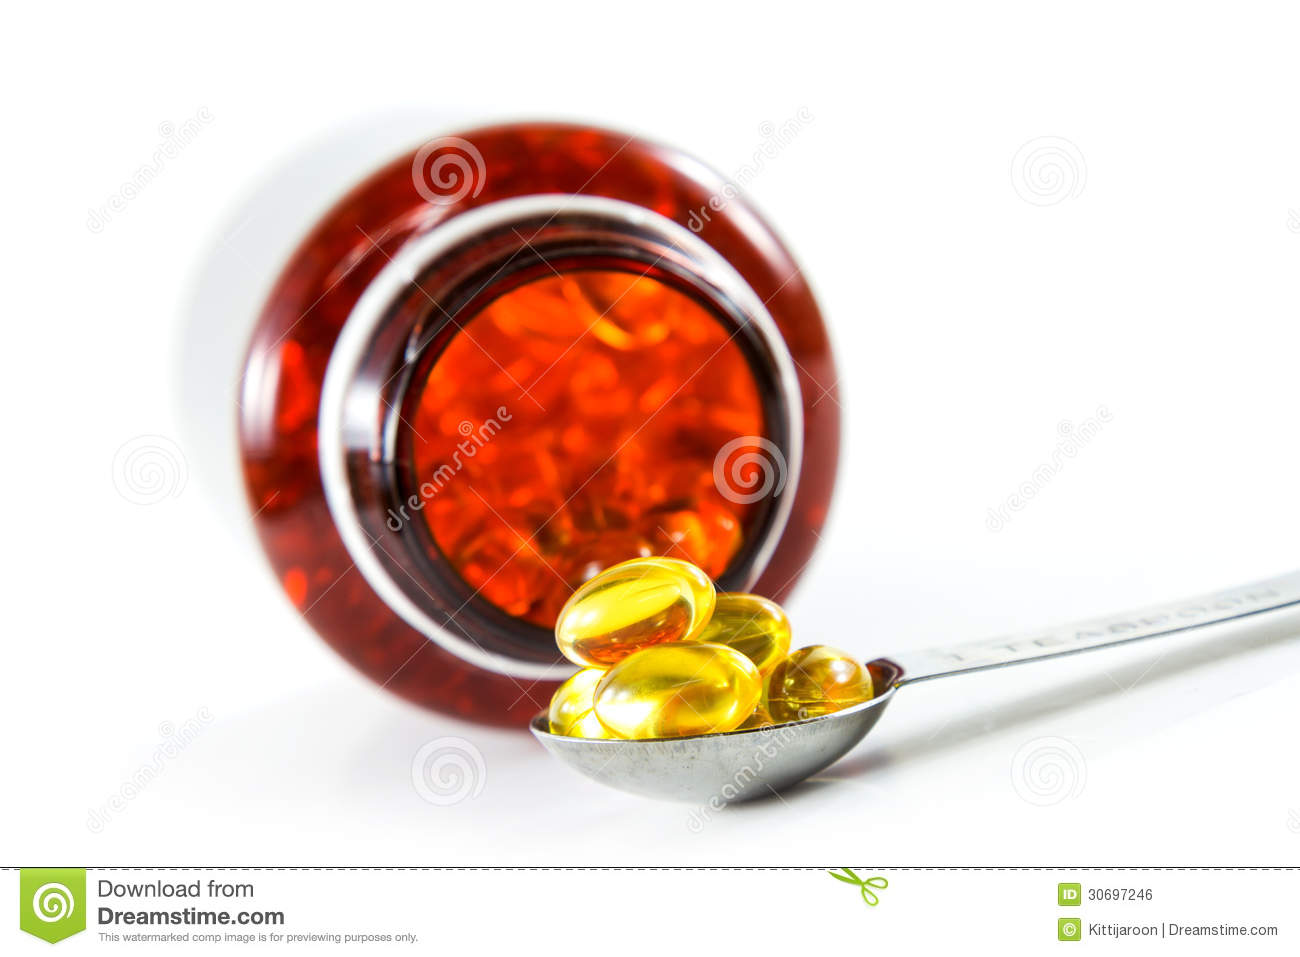 how to use capsules spoon